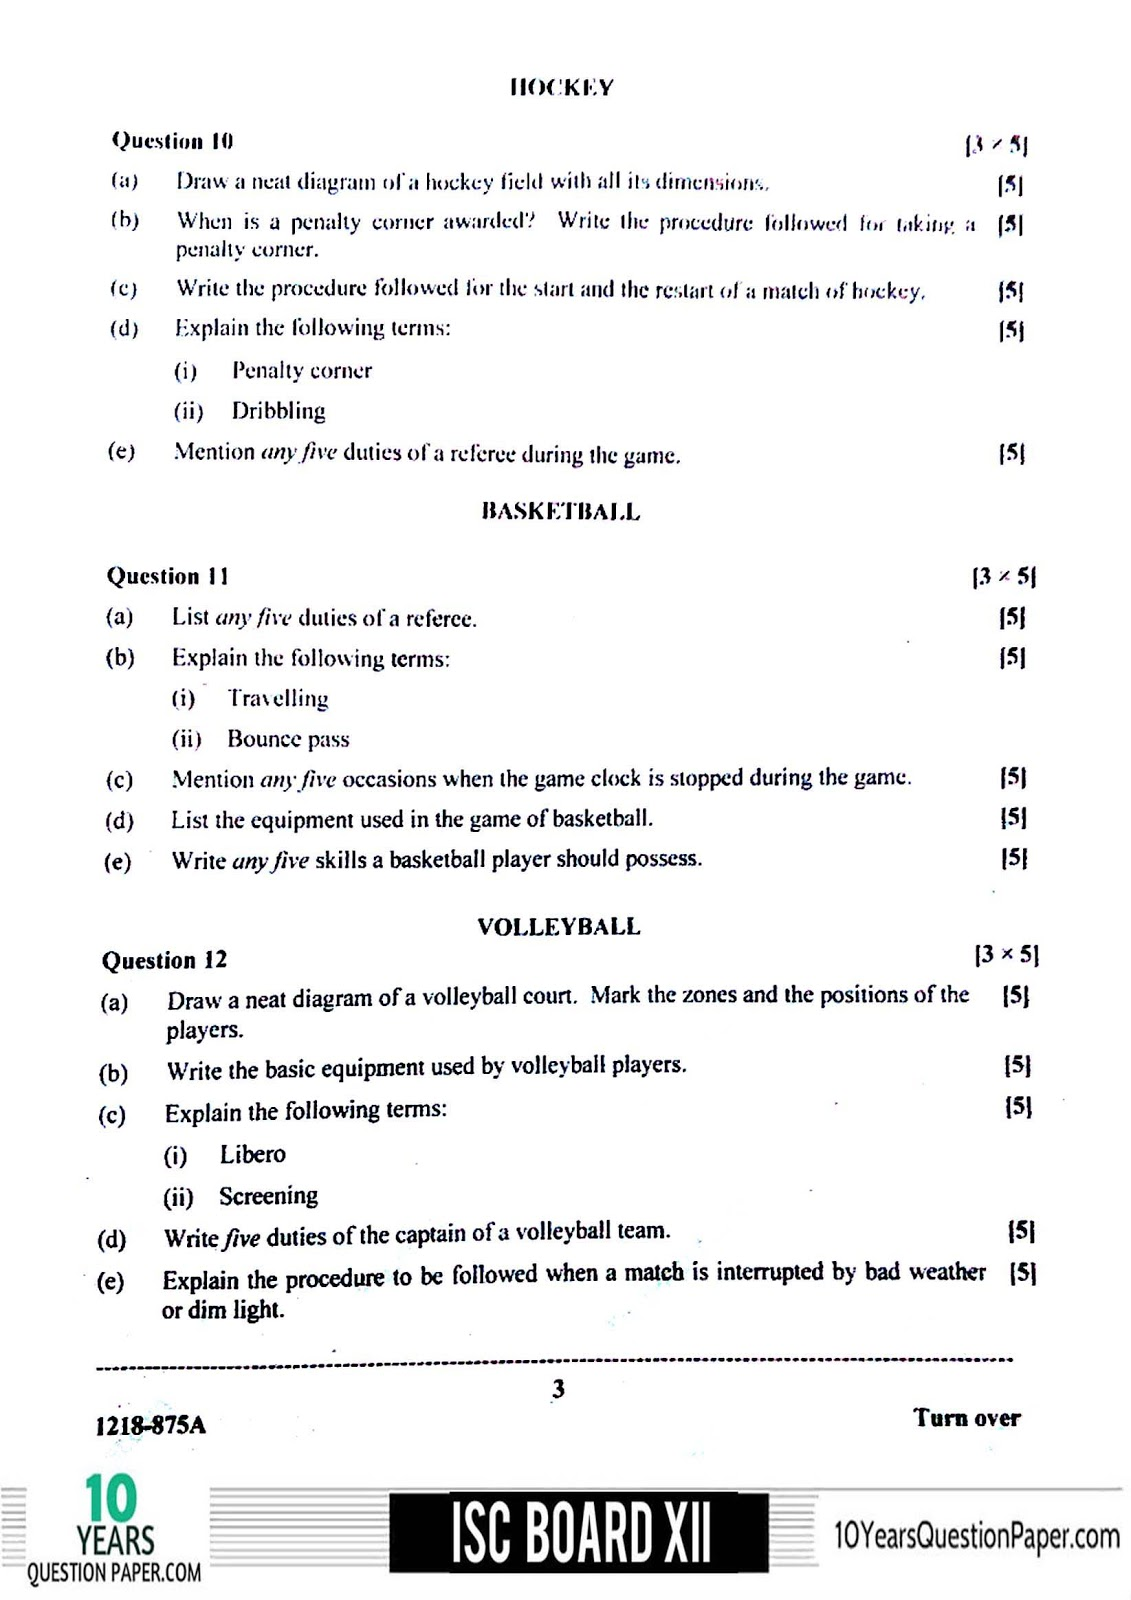 ISC Board 2018 class 12th Physical Education question paper Download PDF